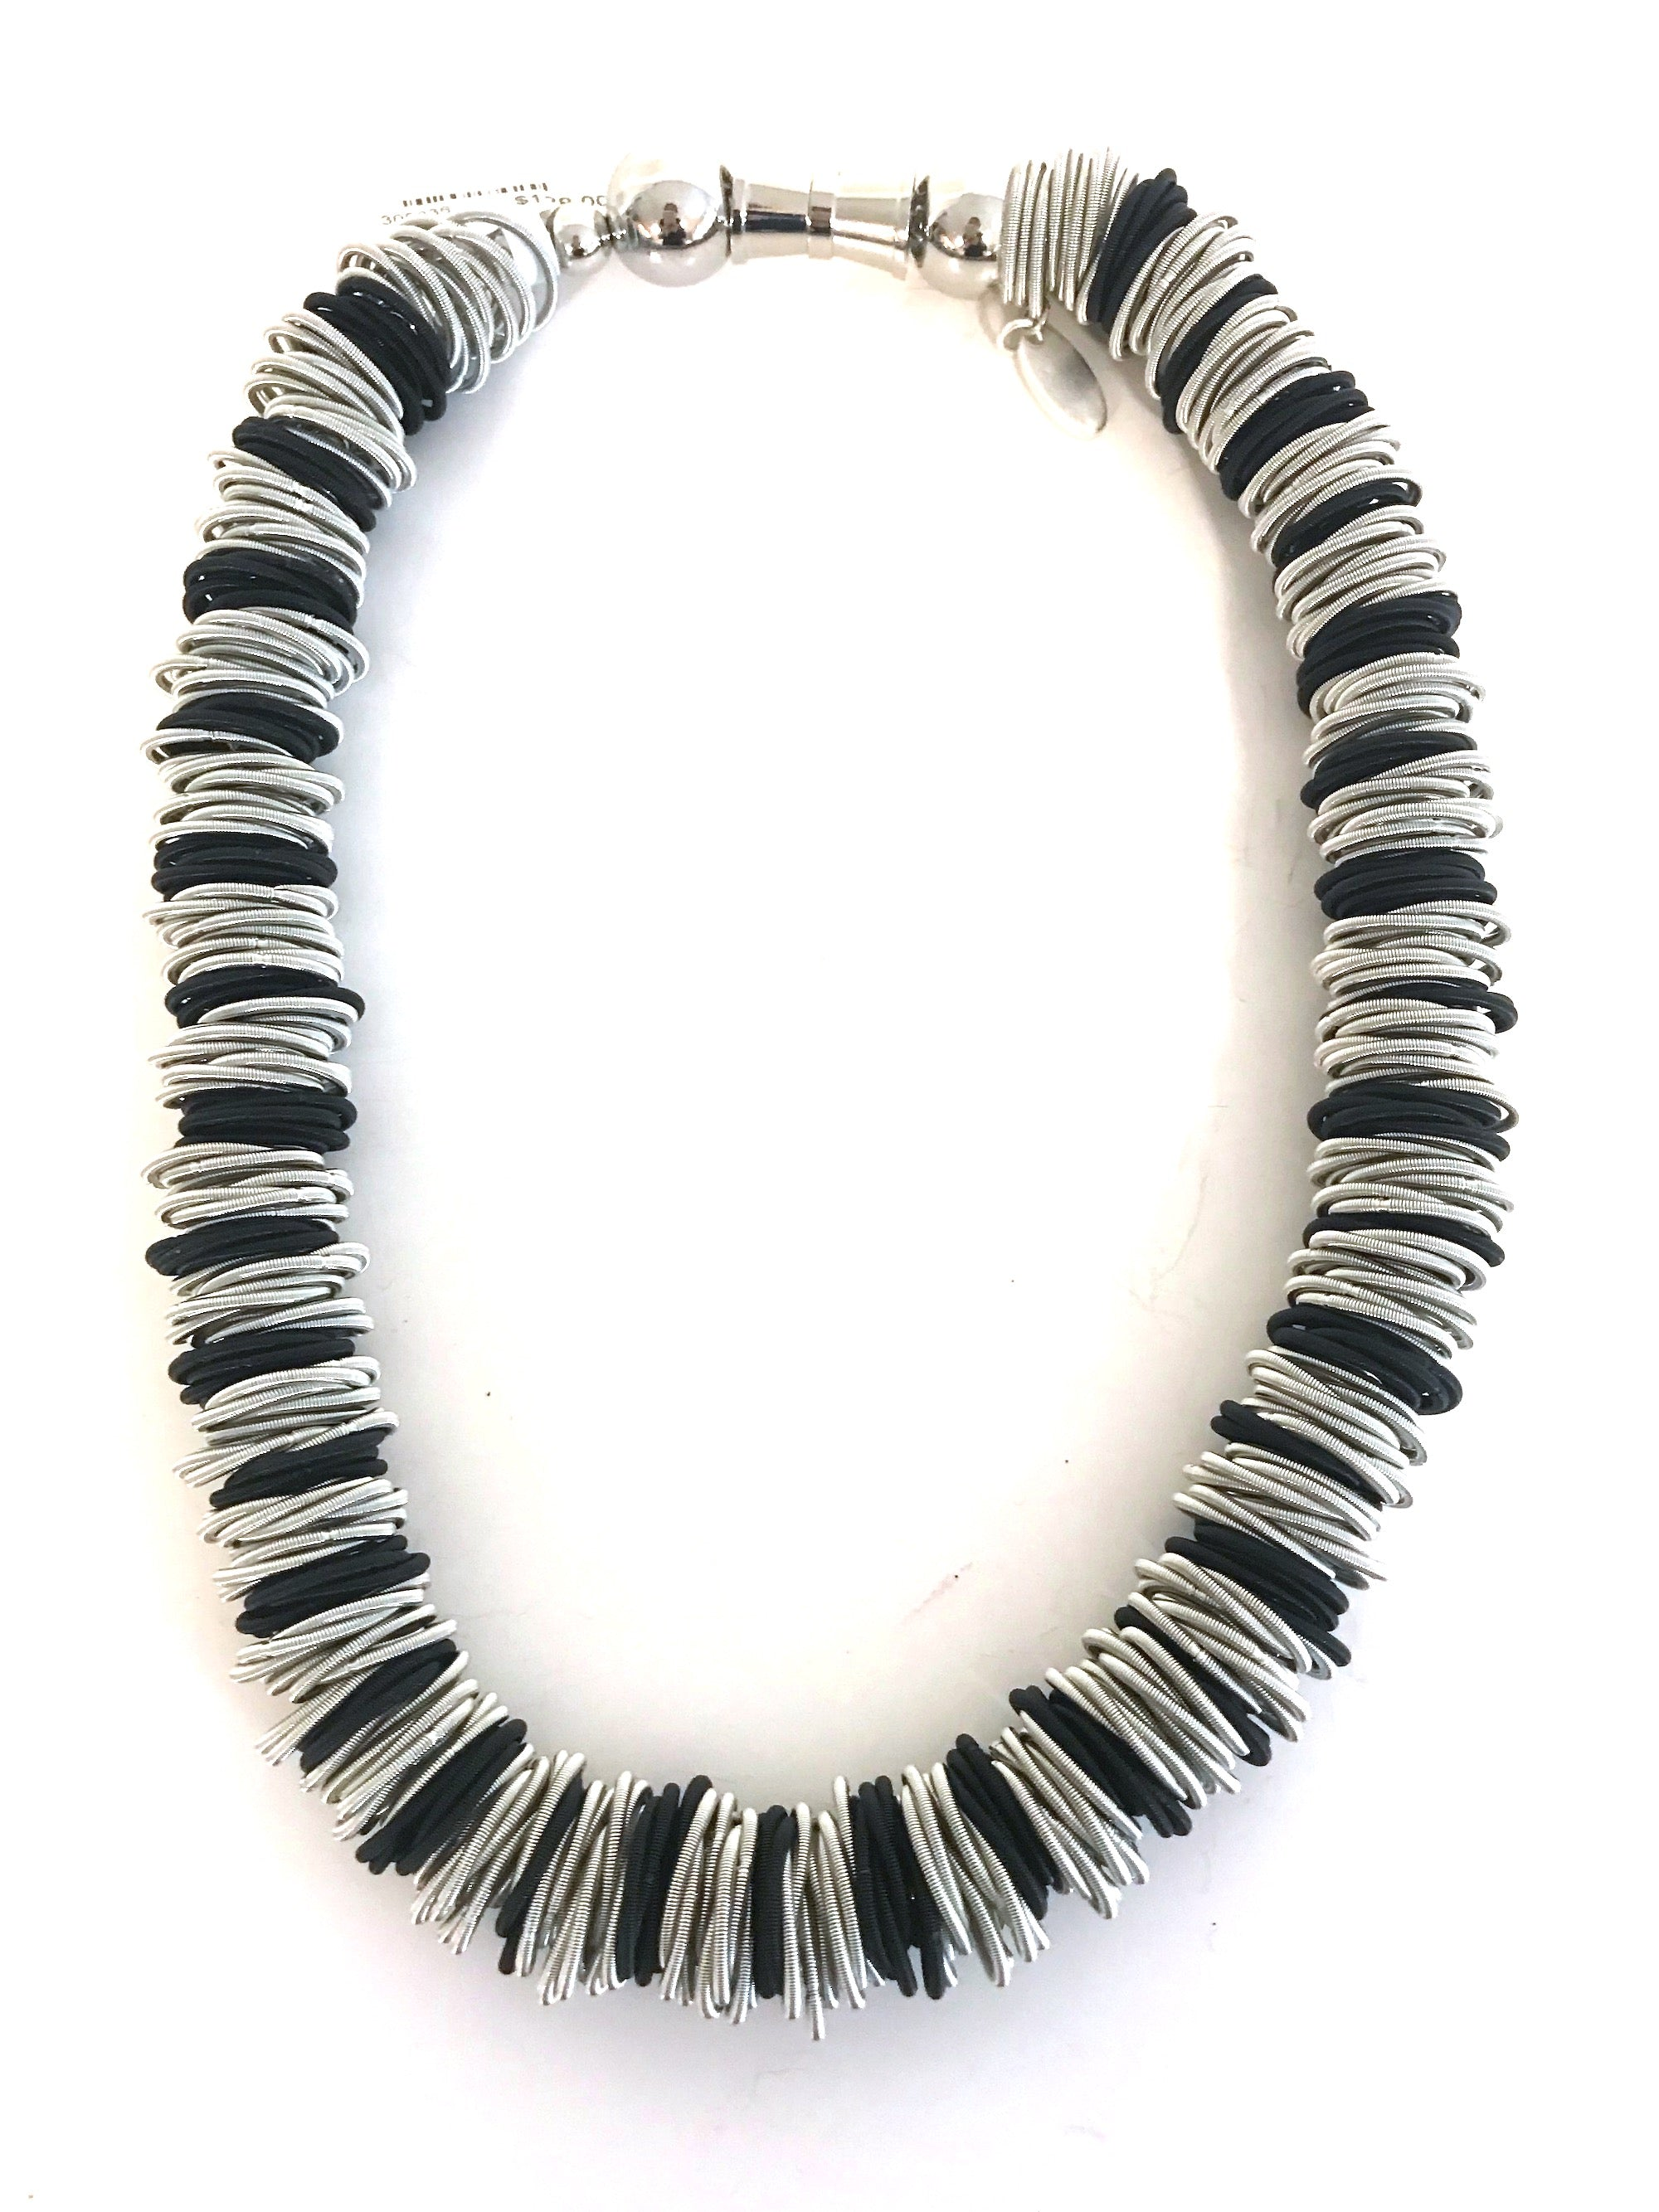 Silver & Black Spring-Wire Necklace